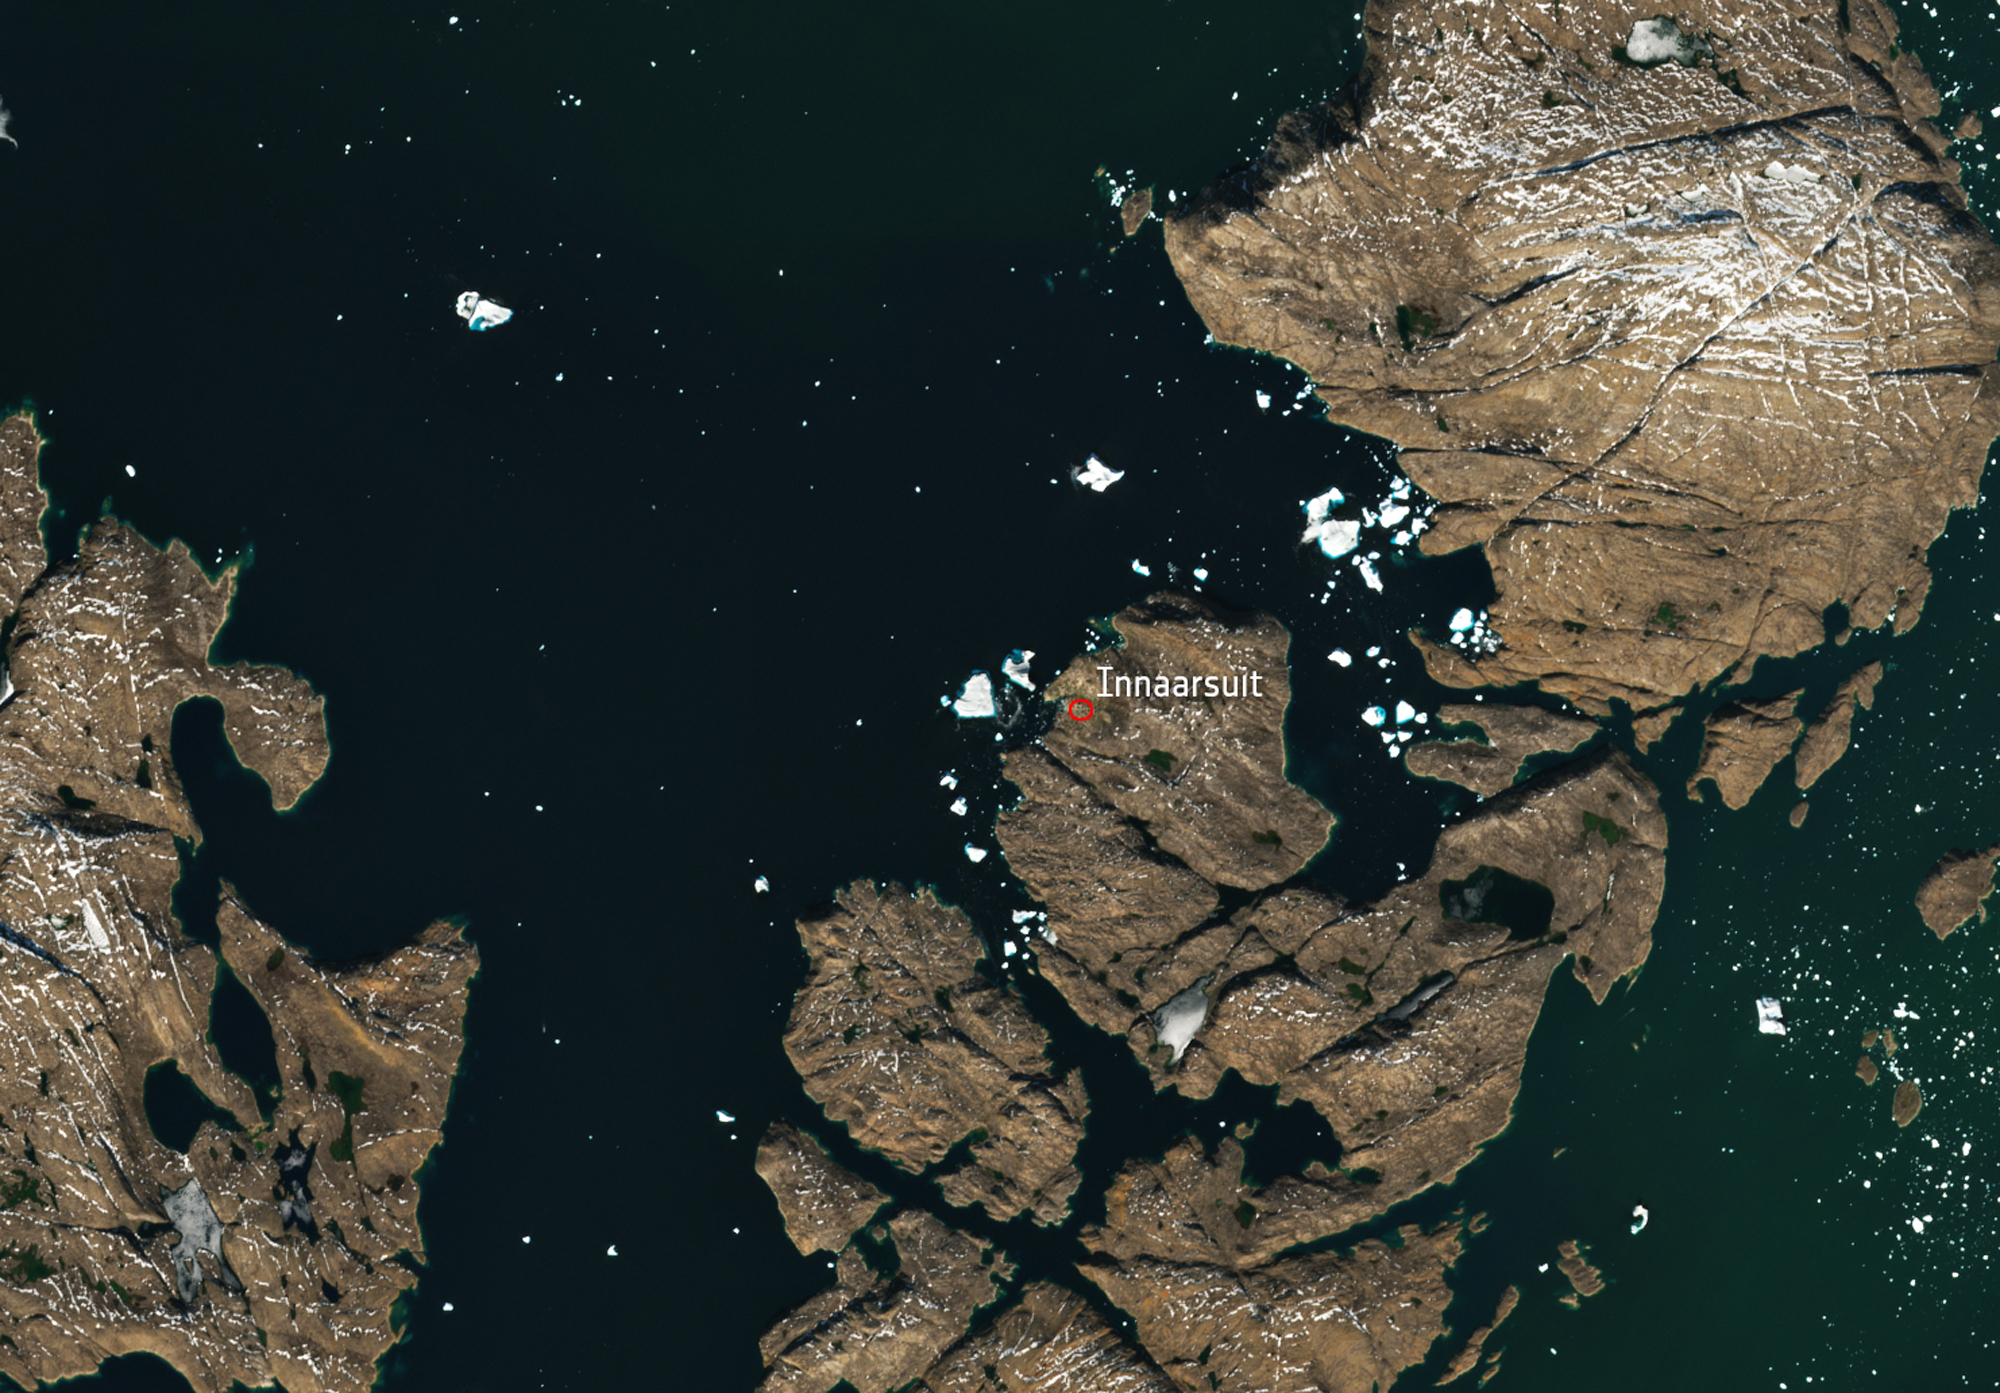 A satellite image shows a huge iceberg perilously close to the village of Innaarsuit